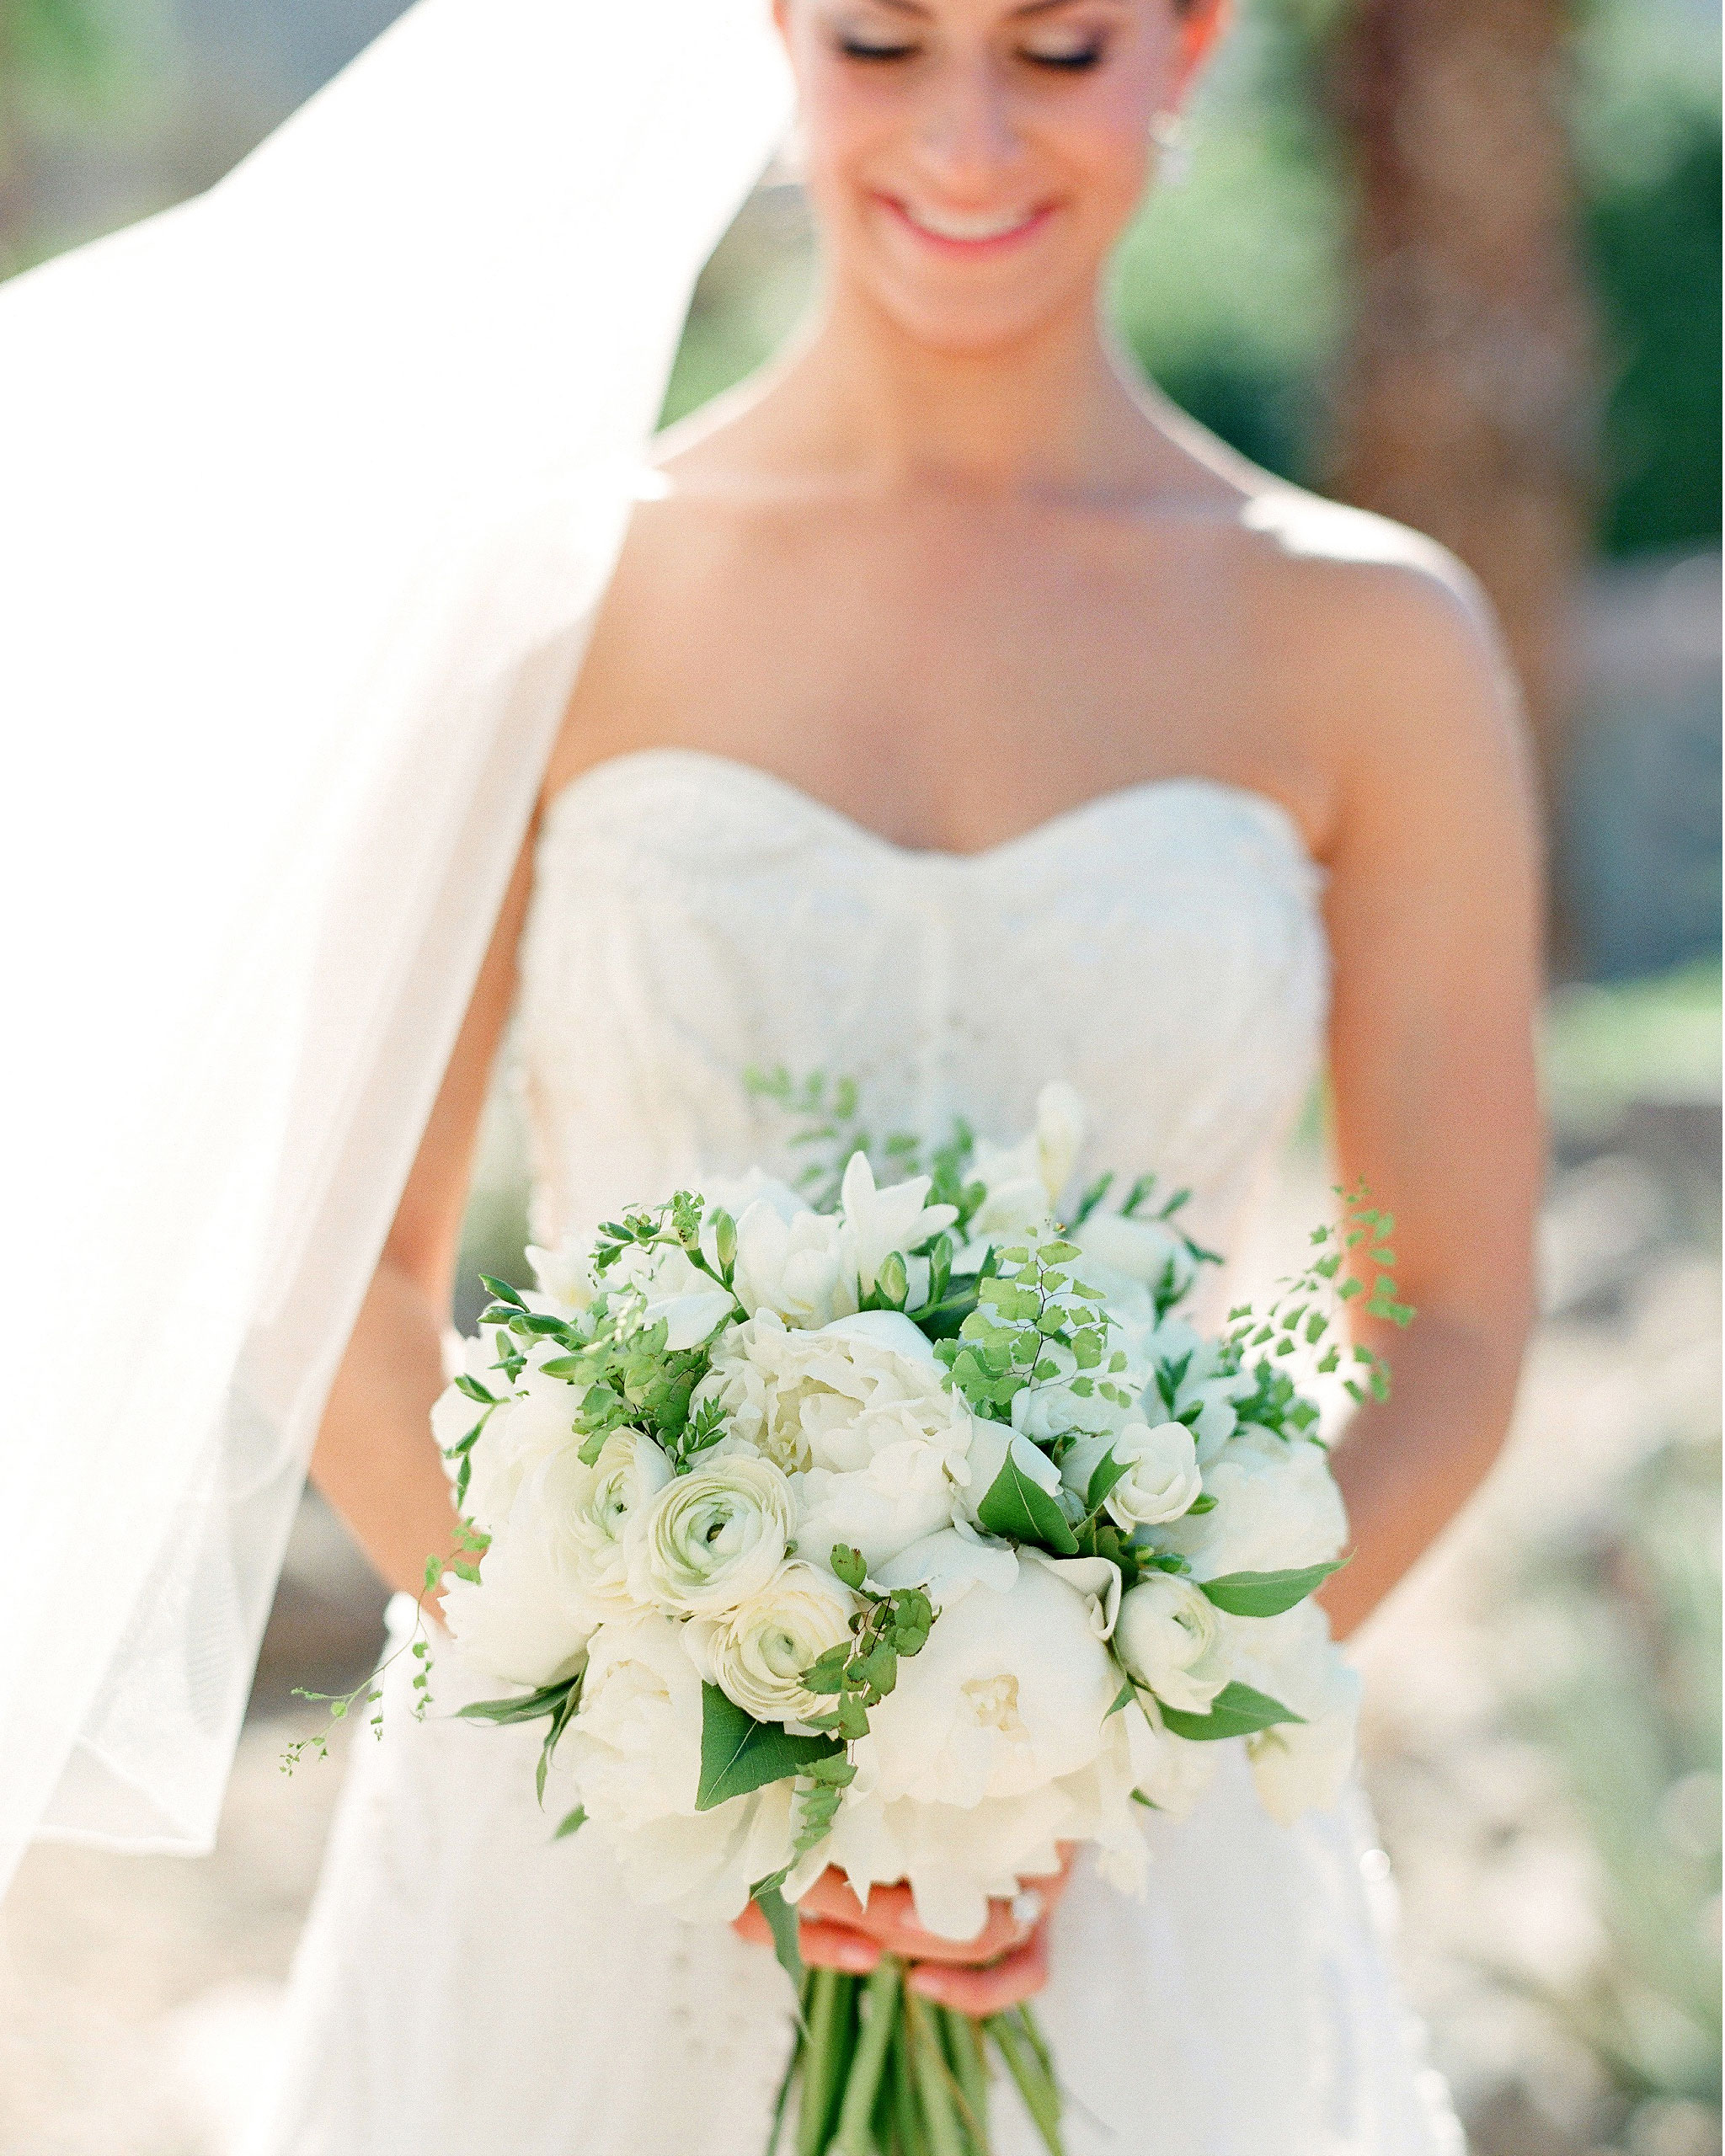 tali-mike-wedding-california-white-bouquet-58490014-s112346.jpg